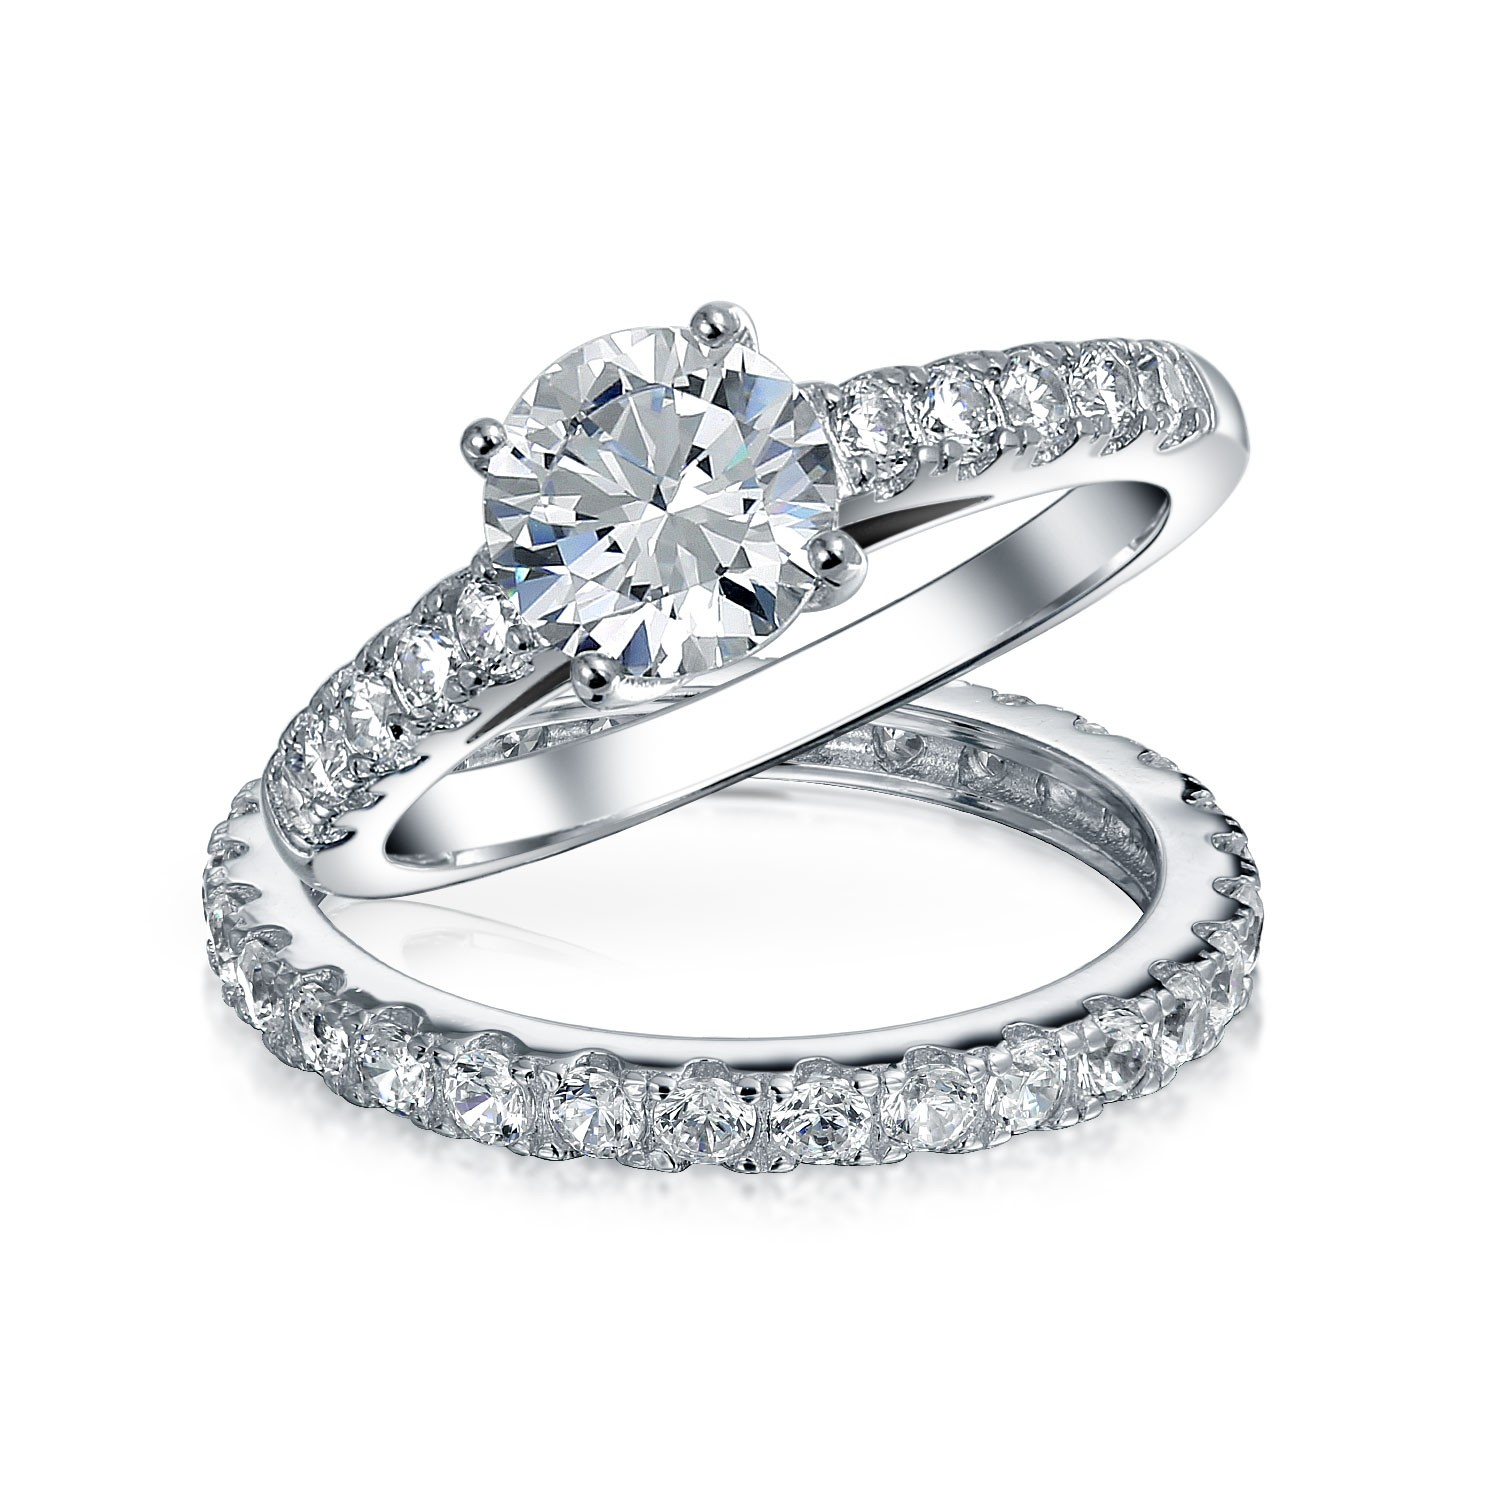 silver engagement rings bling jewelry bridal cz solitaire engagement wedding ring set ywcekua